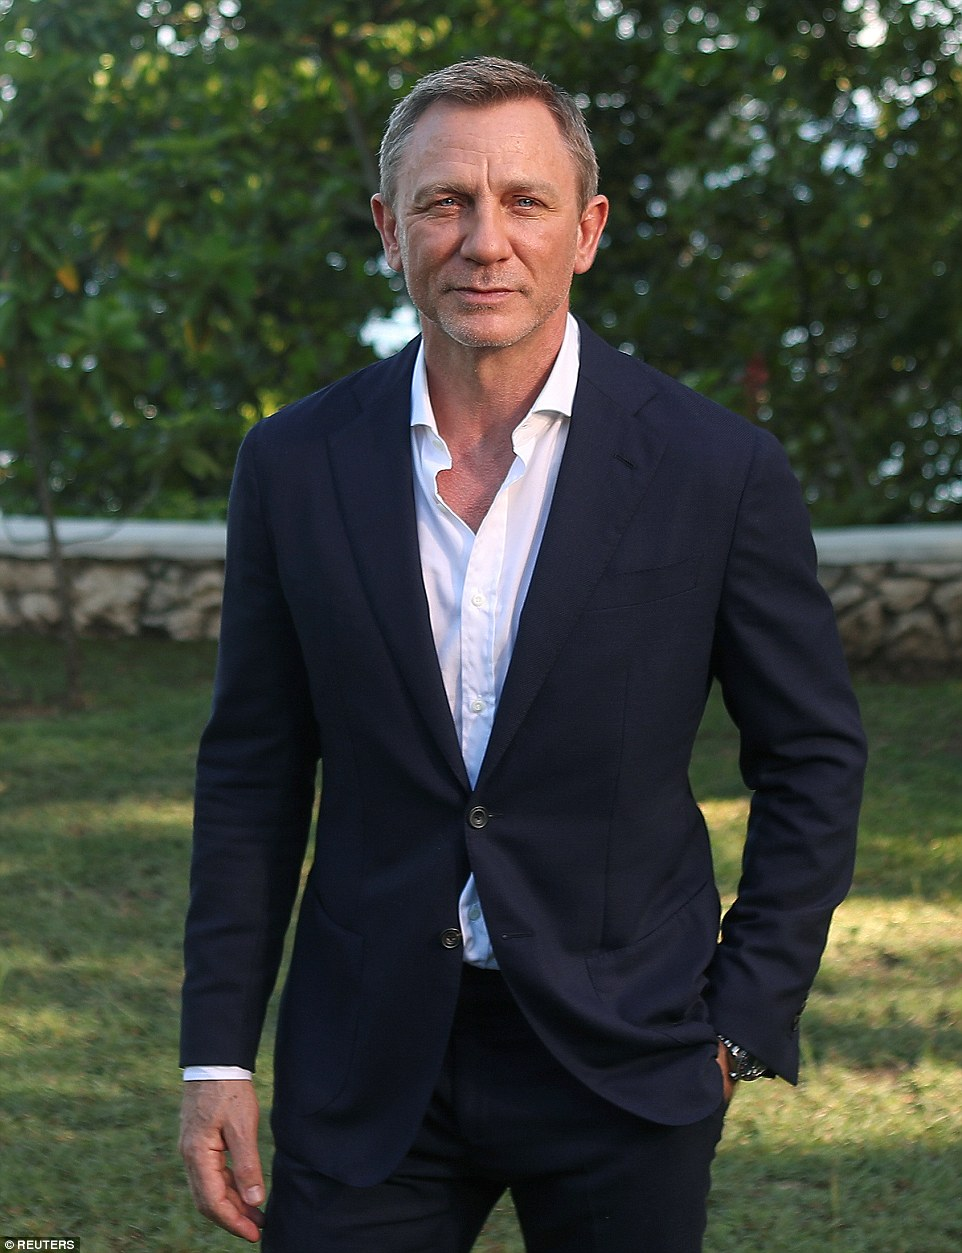 """Actor Daniel Craig poses for a picture during a photocall for the British spy franchise's 25th film set for release next year, titled """"Bond 25"""" in Oracabessa, Jamaica in April"""